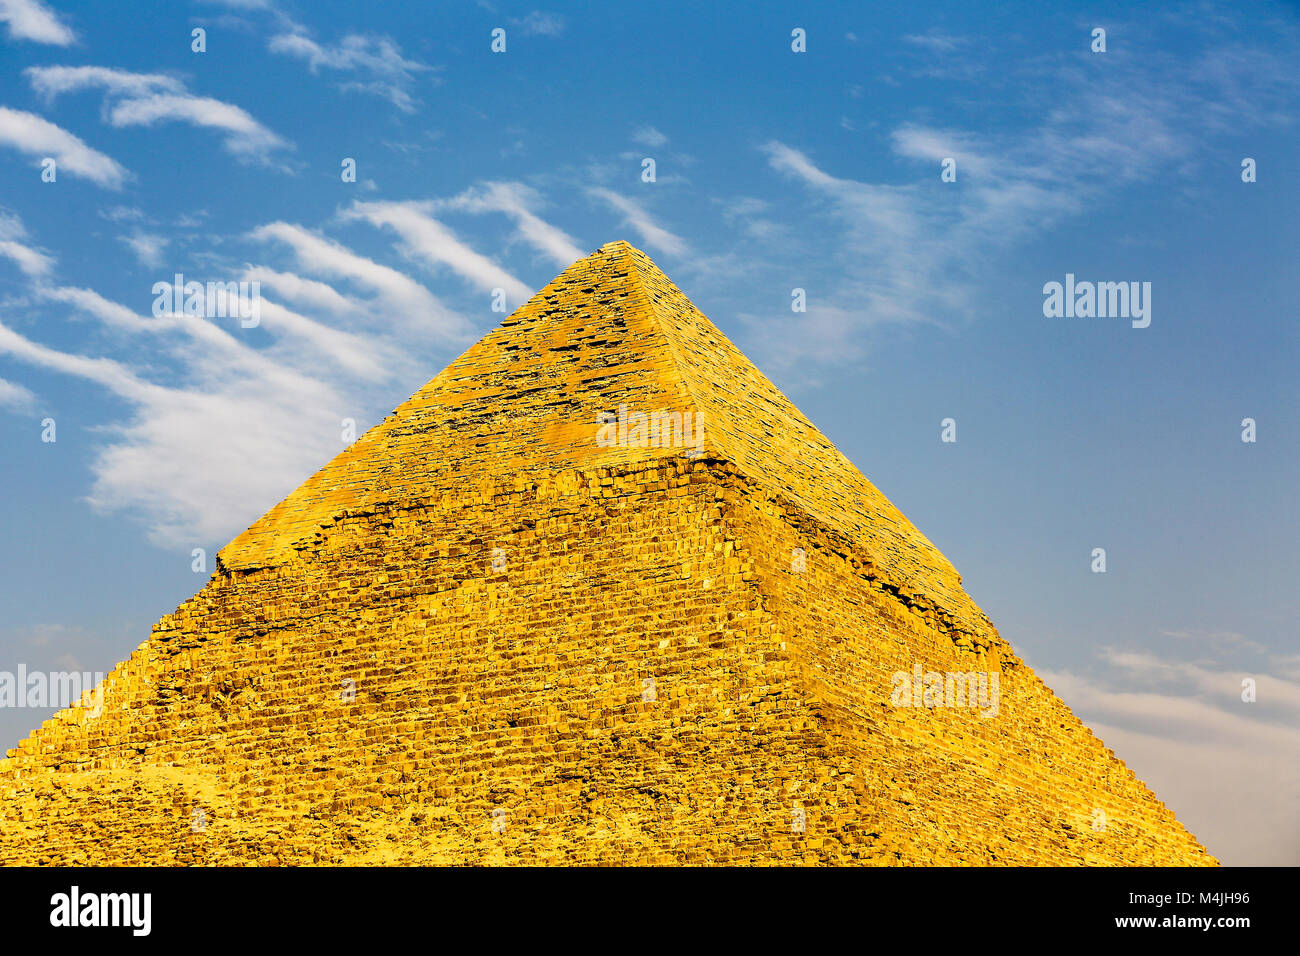 The Great Pyramid of Giza or the Pyramid of Khufu, Pyramids, Giza, Egypt, North Africa - Stock Image